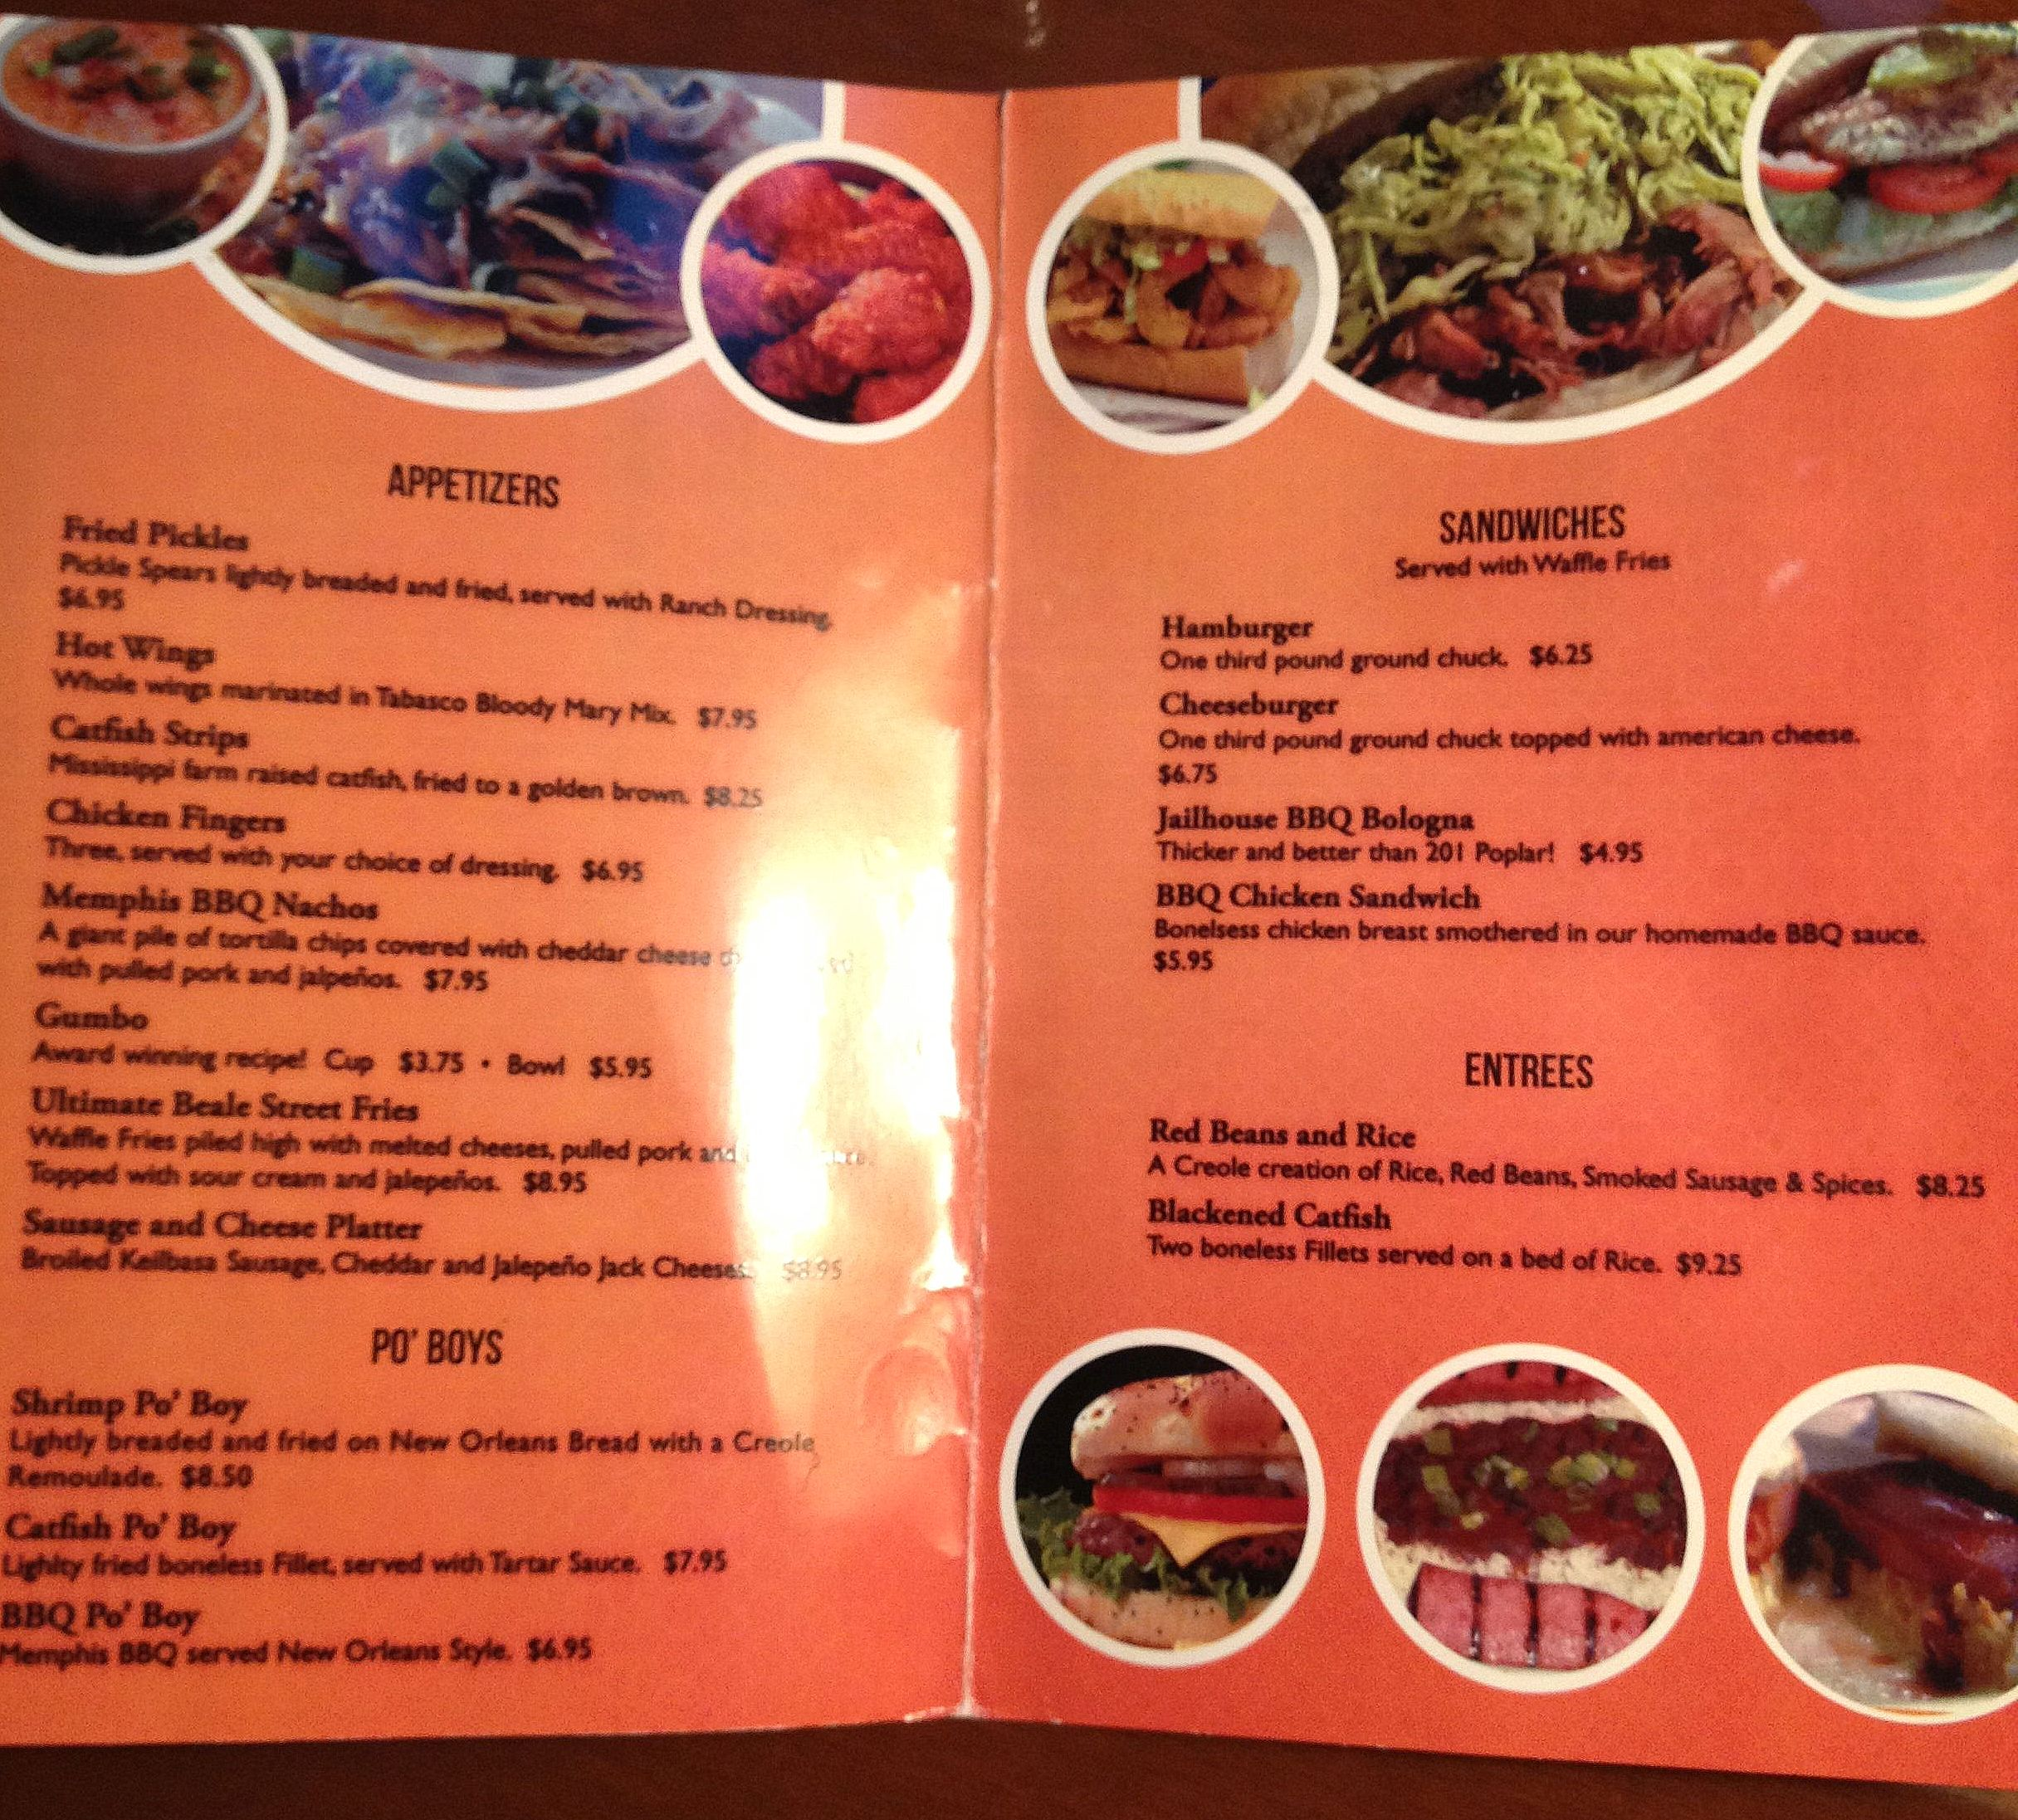 The menu (click to view larger, readable image)